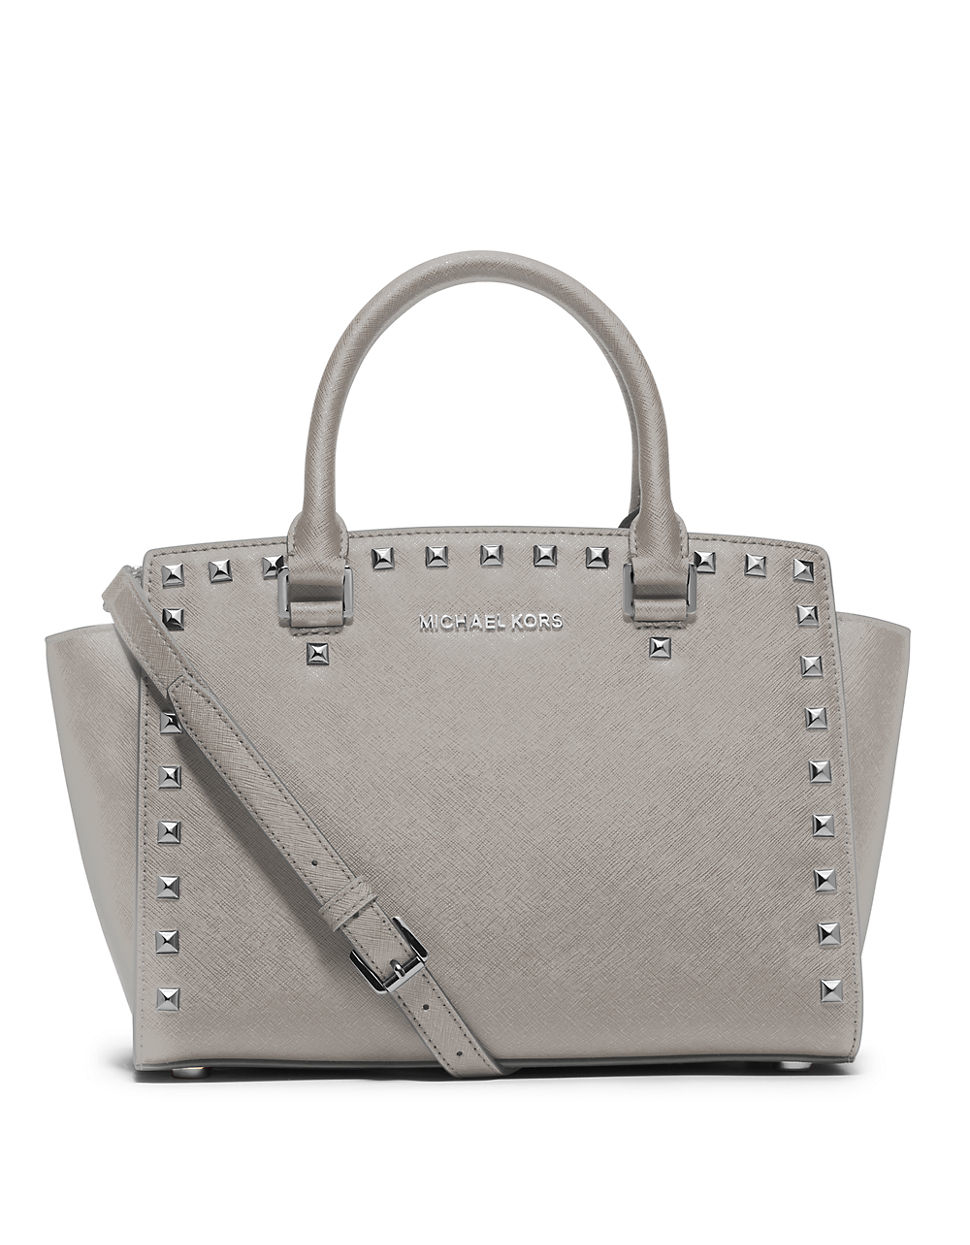 michael michael kors selma studded saffiano leather medium satchel bag in gray lyst. Black Bedroom Furniture Sets. Home Design Ideas